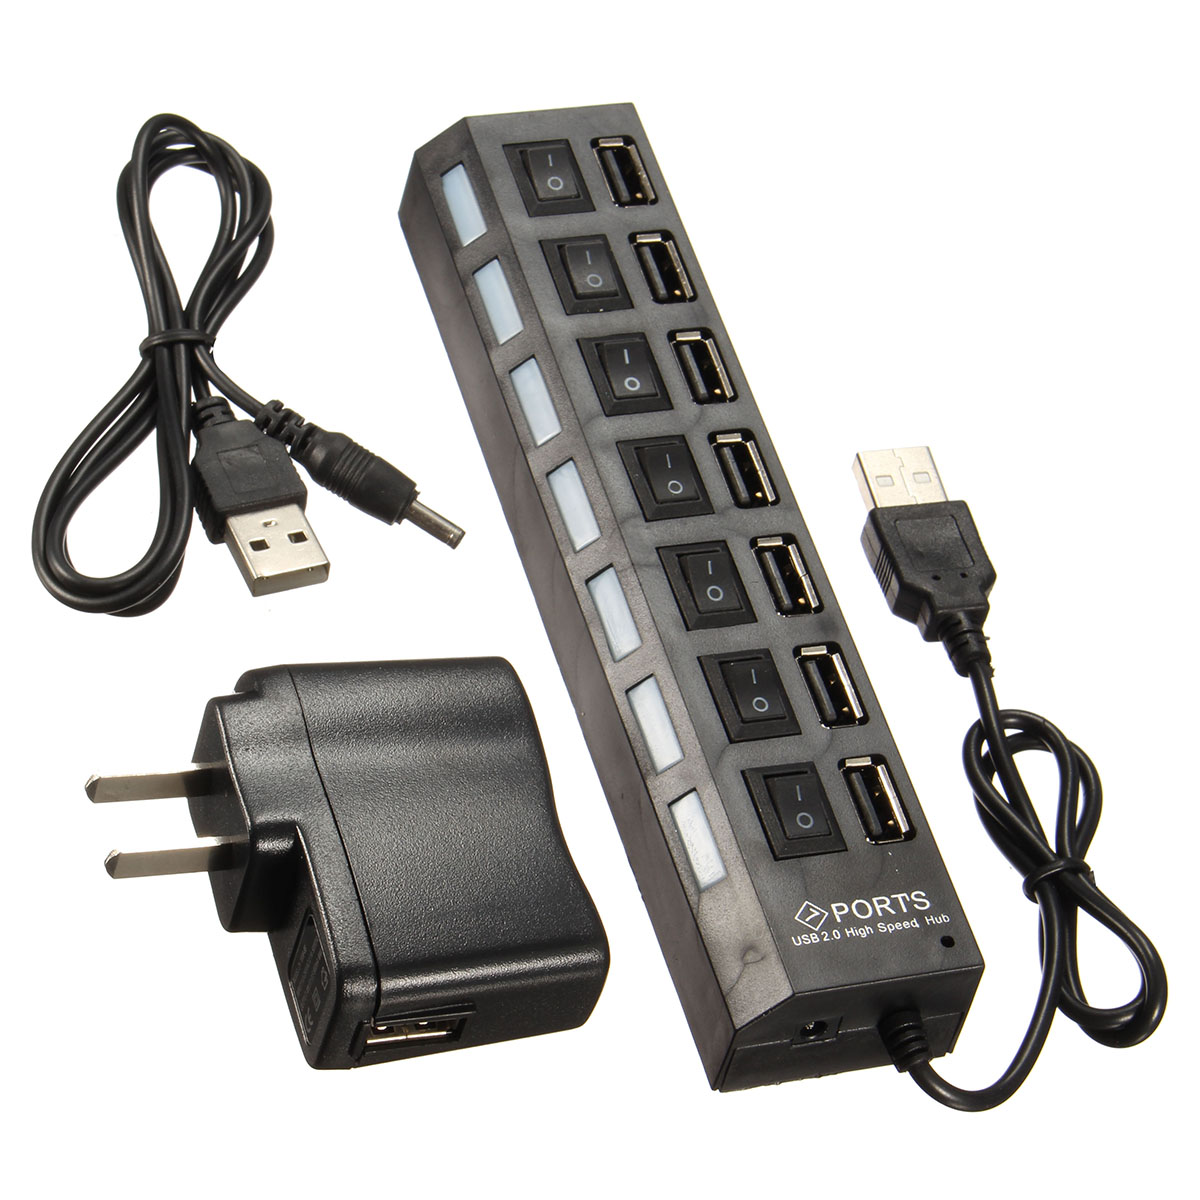 7-Port Super High Speed USB 2.0 Hub Splitter + 5V 2A AC Power Adapter Chord ON/OFF Switch Fast Charger For PC Laptop Mulitple Devices LED indicator lights